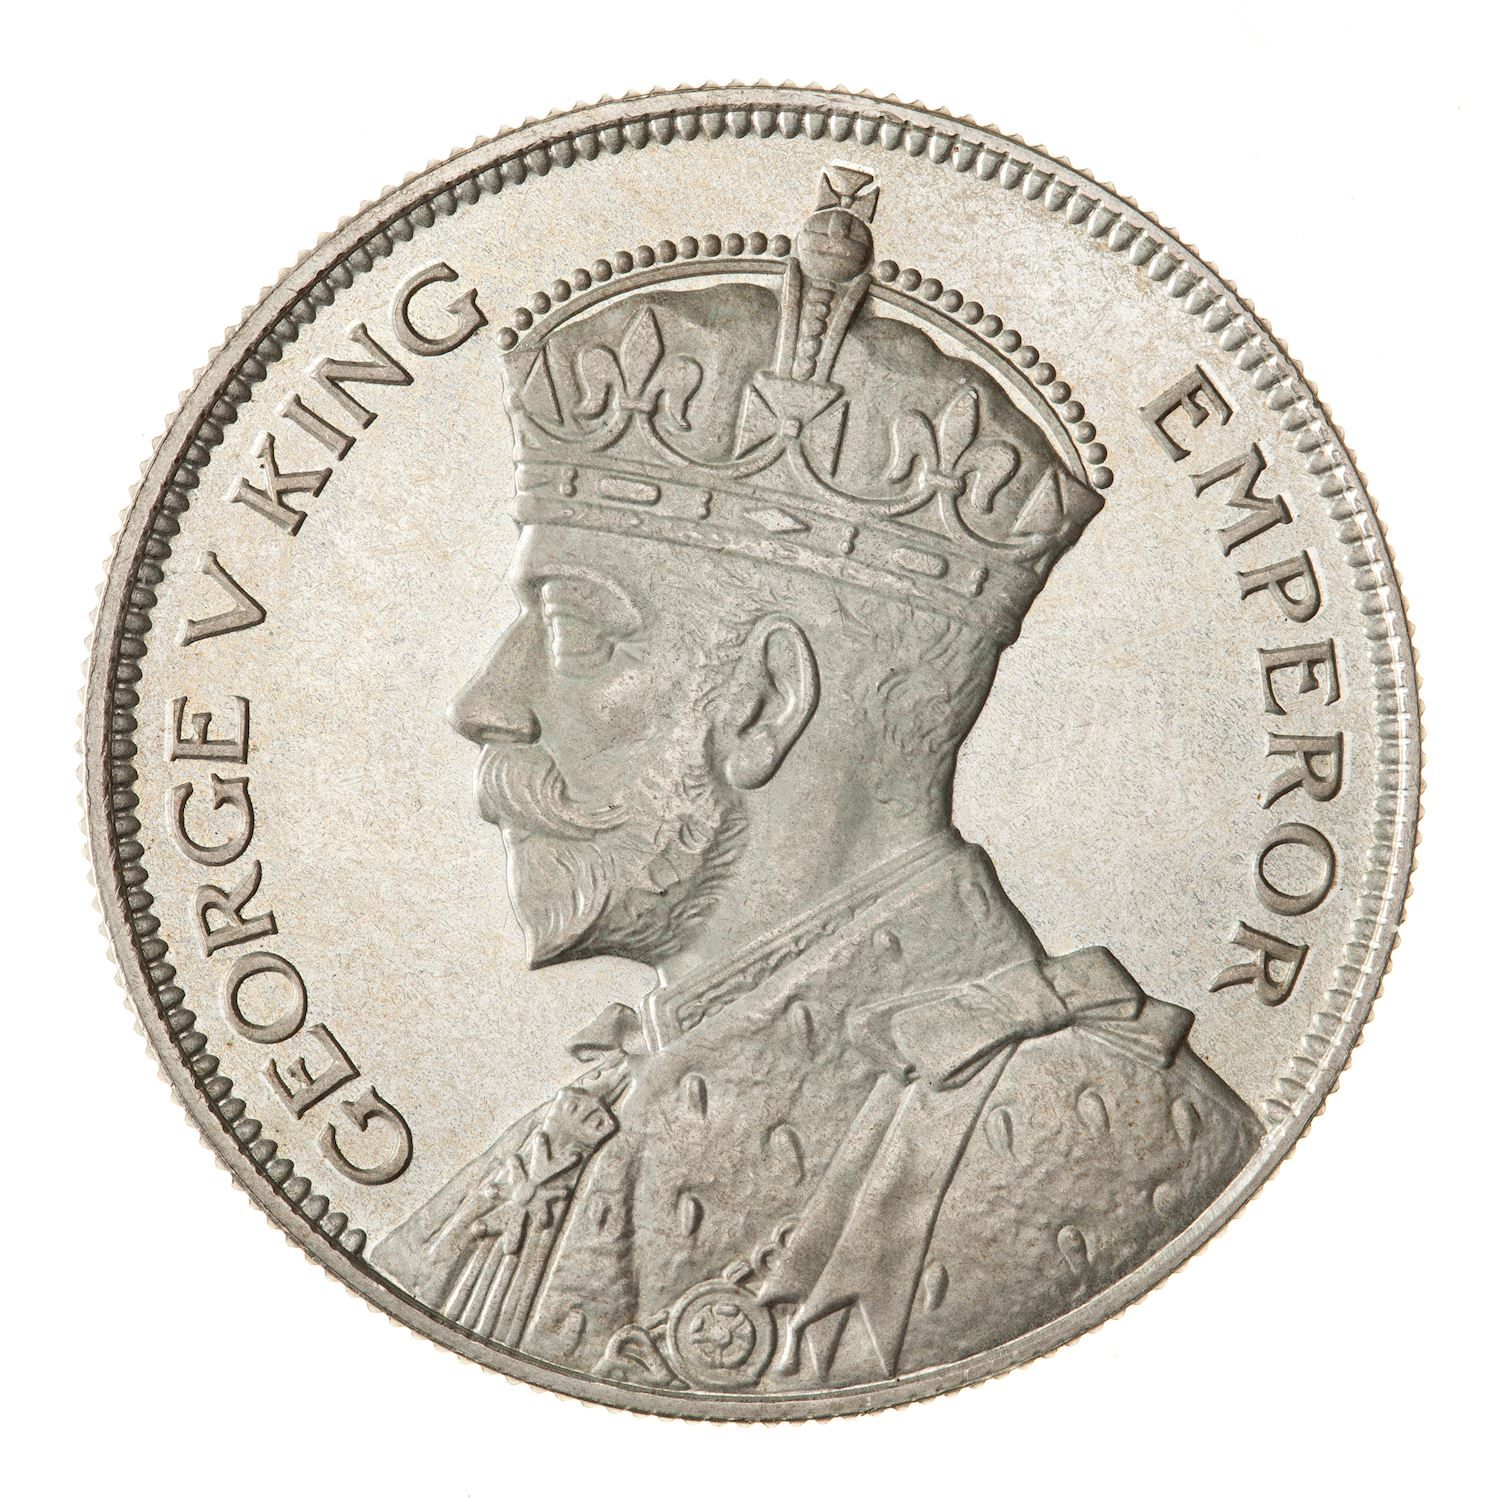 Half Crown (Silver): Photo Proof Coin - 1/2 Crown, New Zealand, 1933